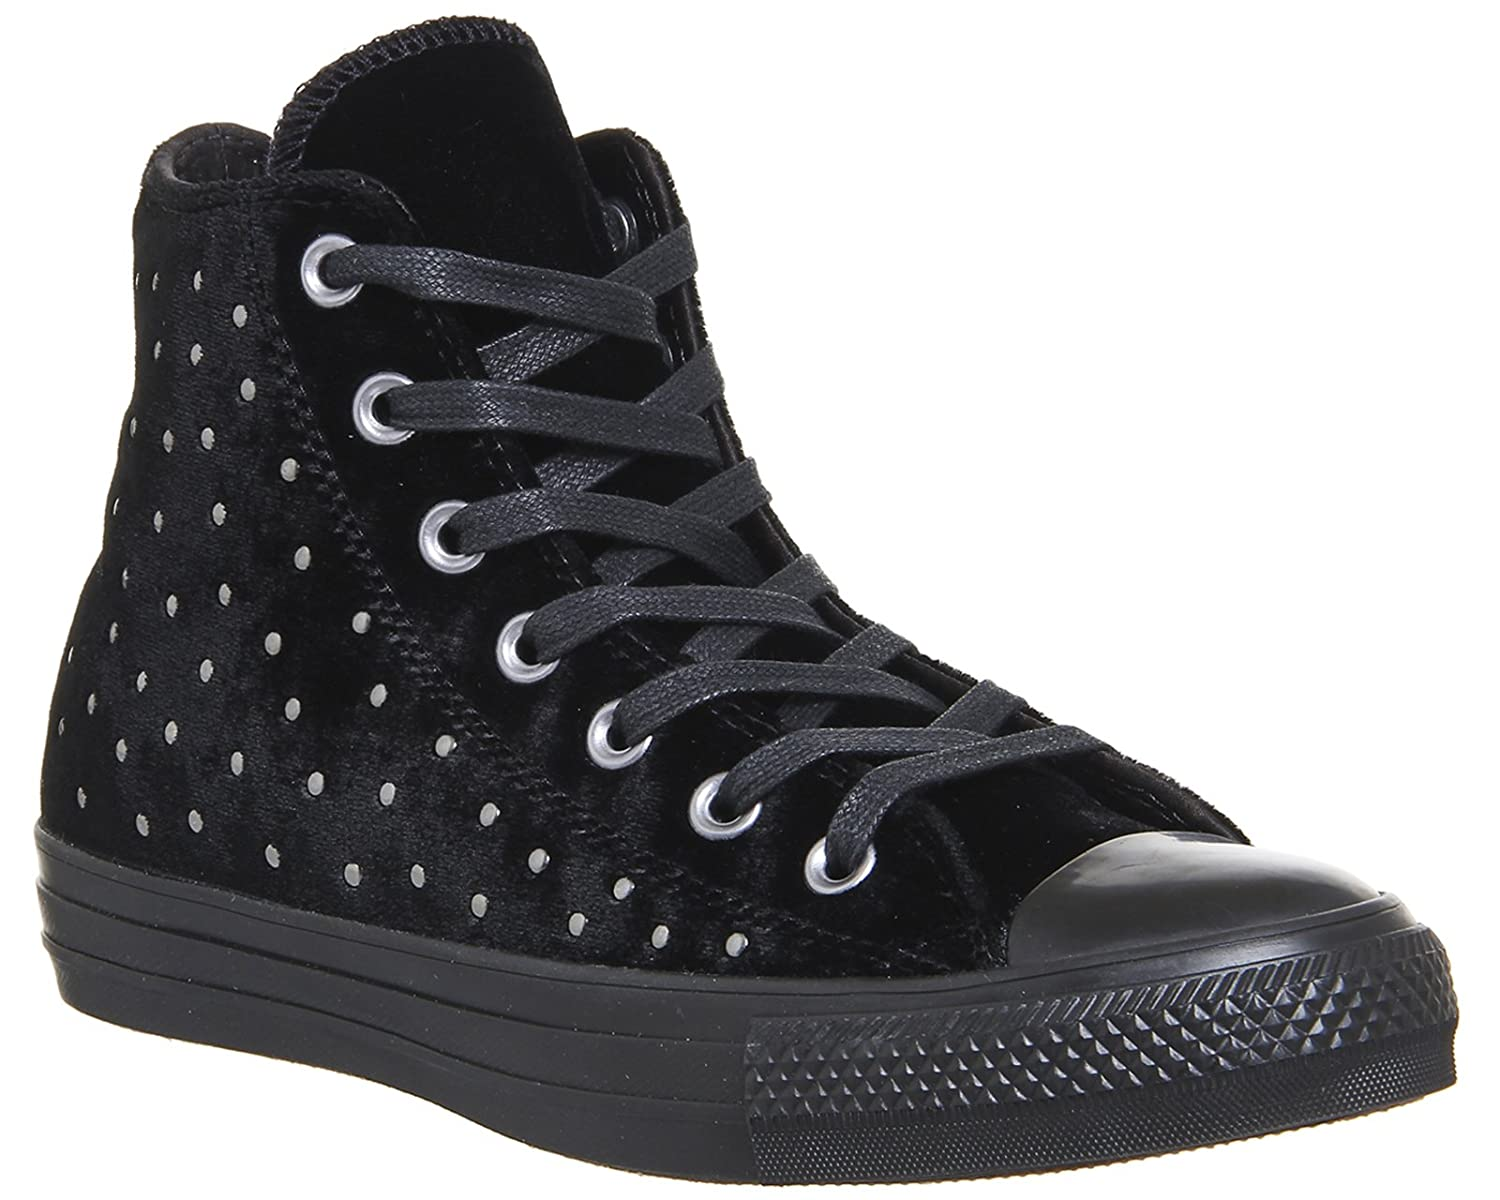 Converse AS Hi Can charcoal 1J793 Unisex-Erwachsene Sneaker  37.5 EU|Black/Black/Brown